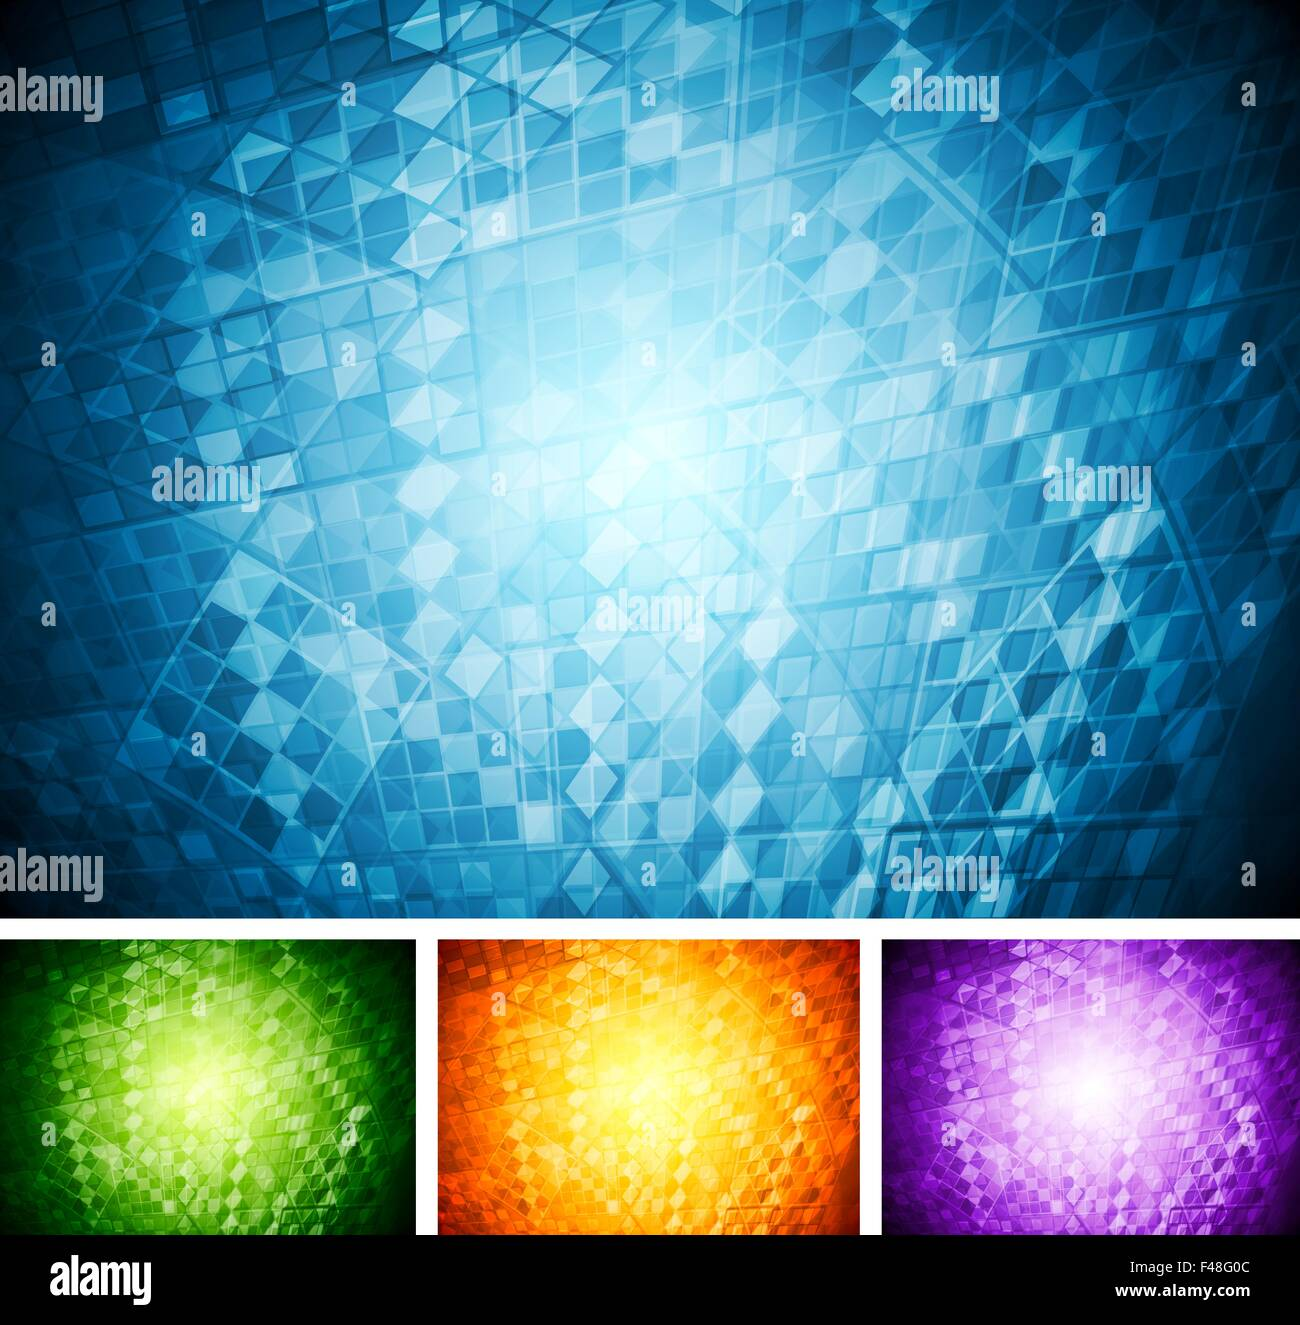 Abstract tech backgrounds - Stock Image